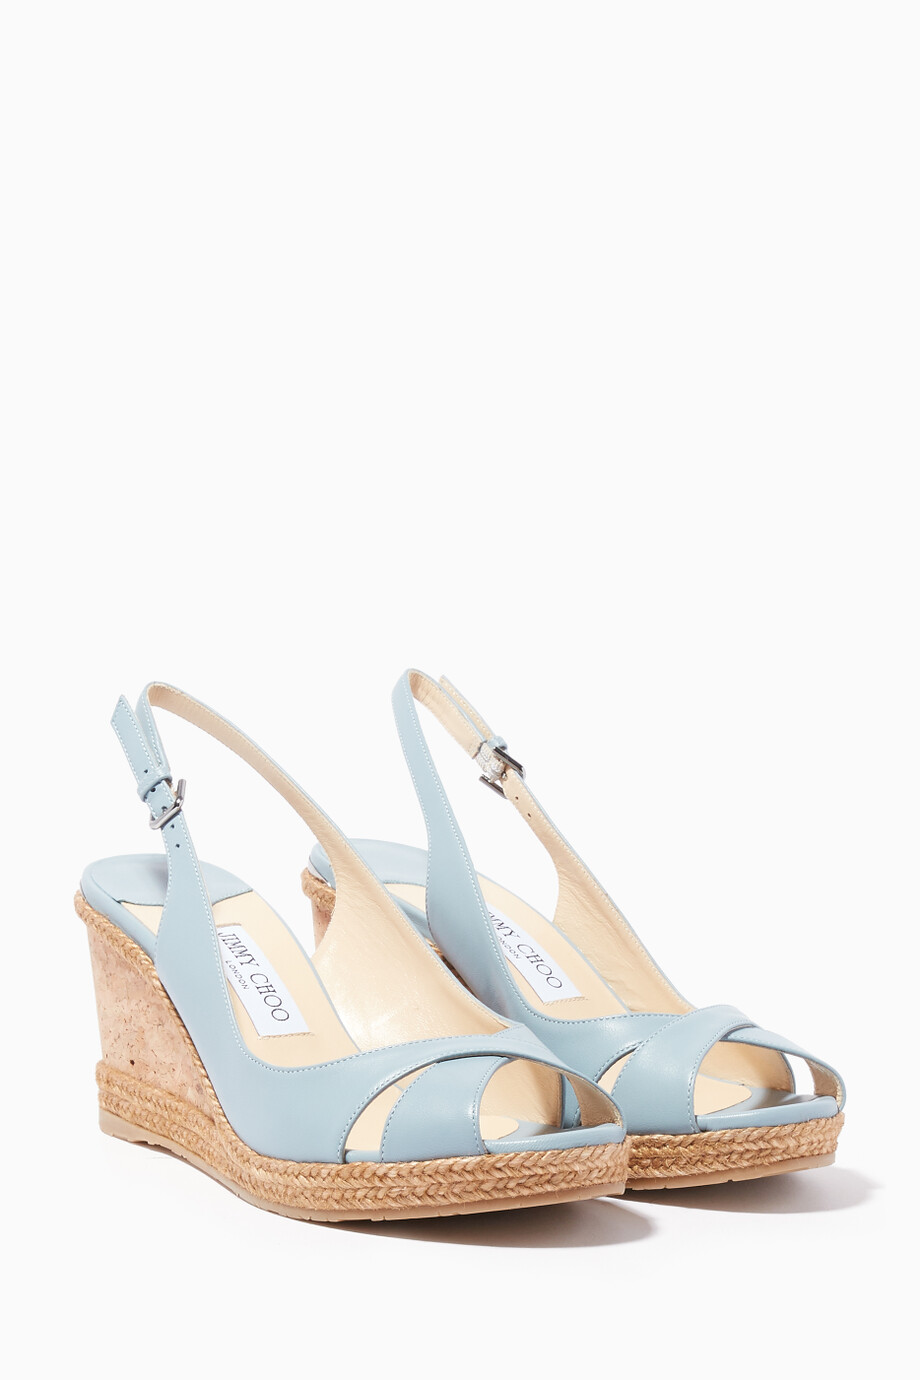 4c5437d78ff2 Shop Jimmy Choo Blue Aqua Nappa Leather Amely Wedges for Women ...